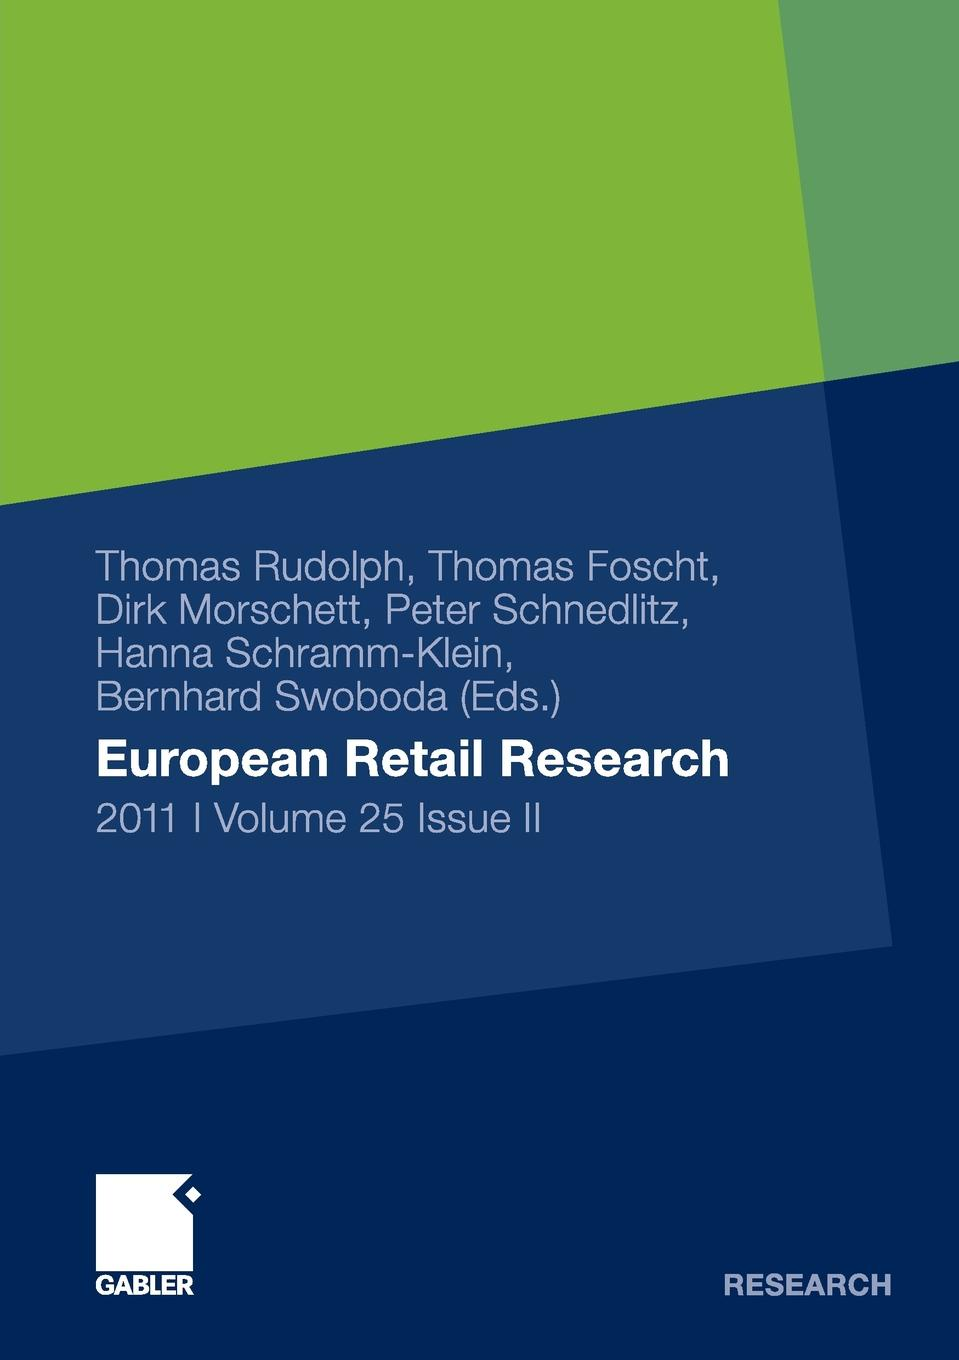 купить Thomas Rudolph European Retail Research 2011, Volume 25 Issue II по цене 9389 рублей